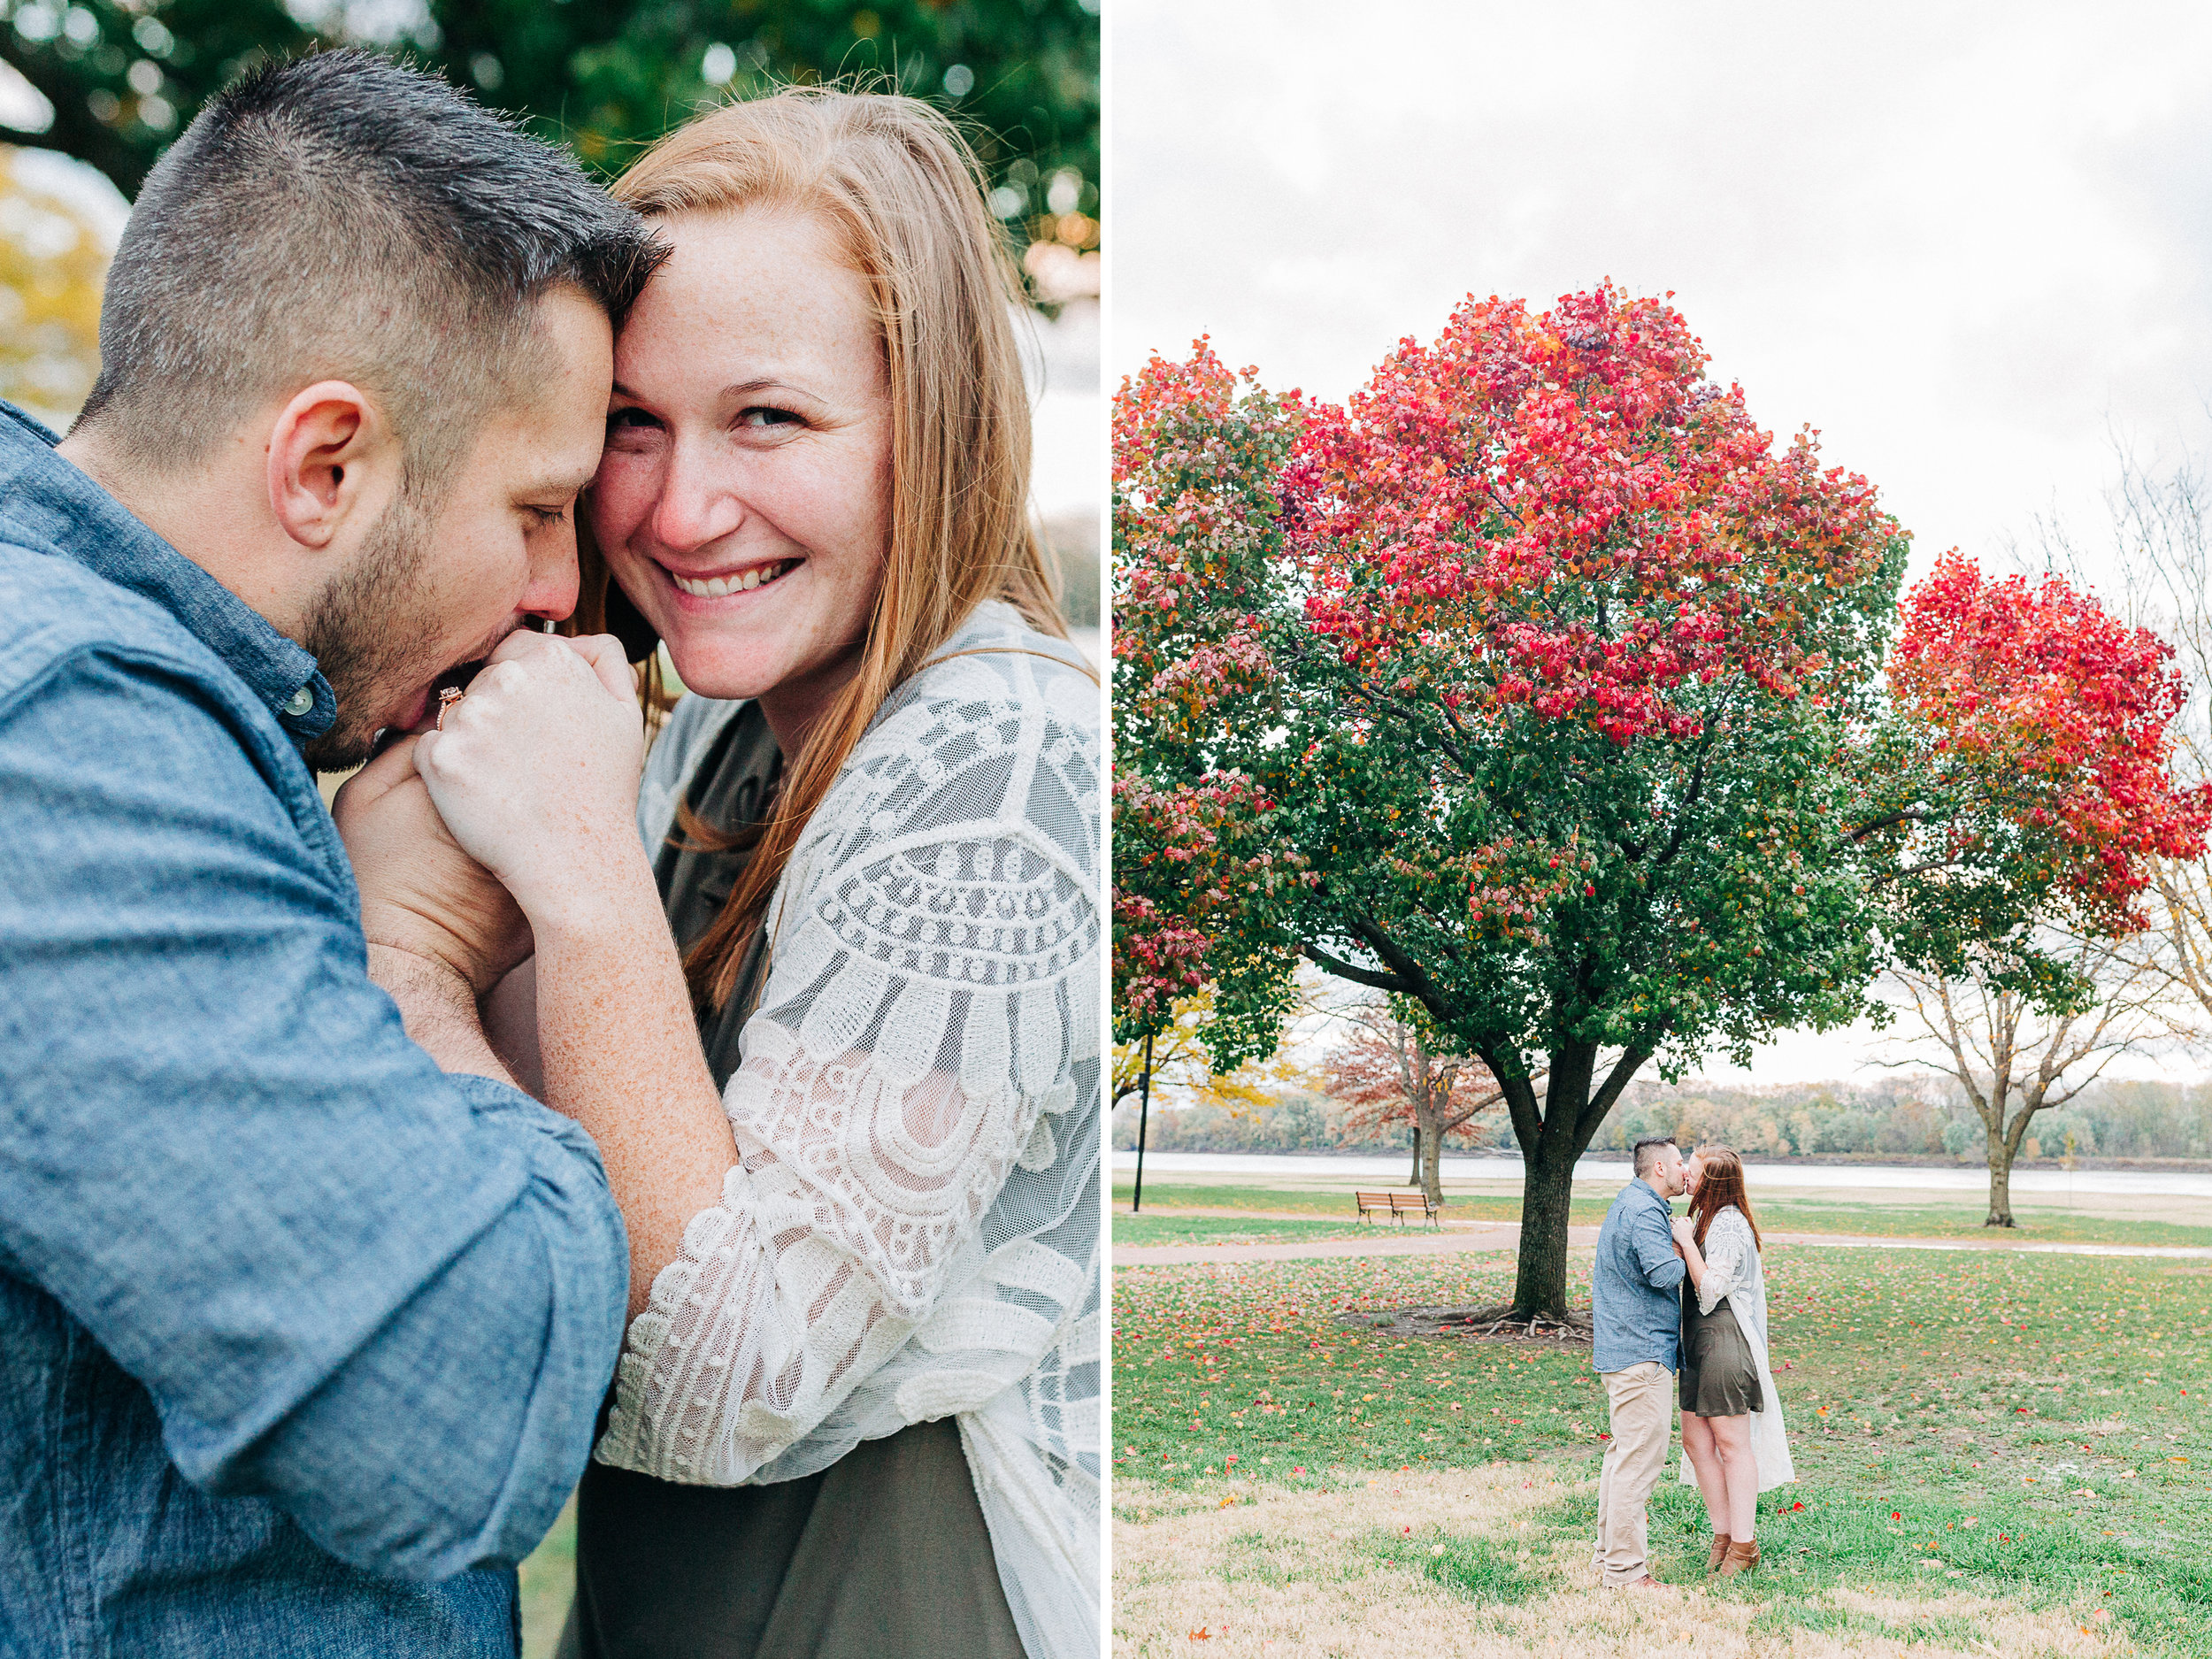 Dorothy_Louise_Photography_Sam_Nick_Engagement6.jpg